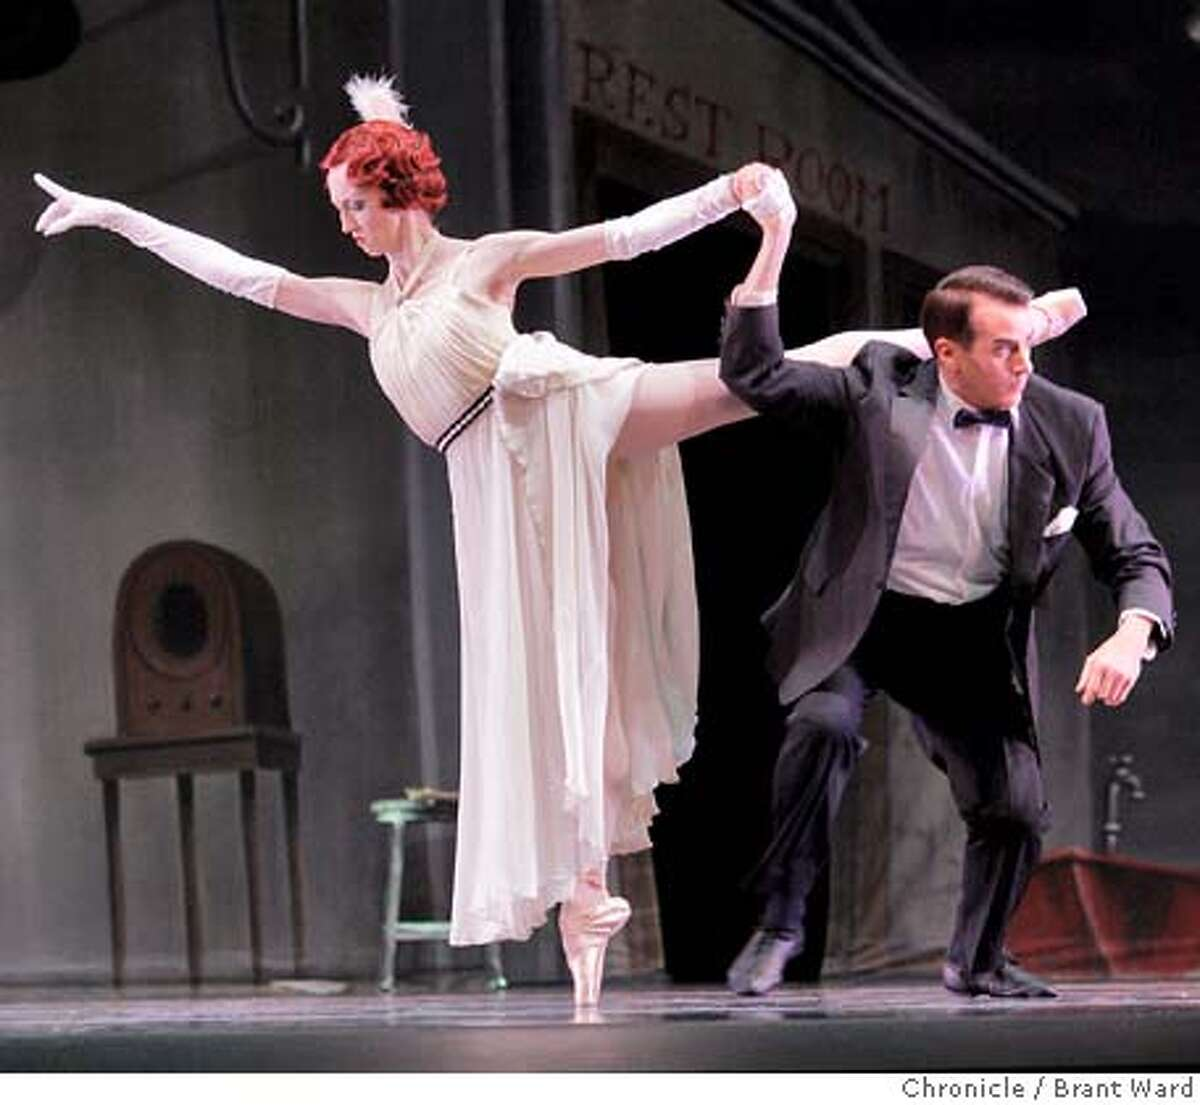 Katita Waldo, left and Val Caniparoli as two slightly drunken rich people who appear at the Filling Station. Views from the new San Francisco ballet, Program 1. (By Brant Ward/San Francisco Chronicle) Ran on: 01-31-2008 Nutnaree Pipit-Suksun (center), Tuesdays soloist in 7 for Eight, dances with solid elegance, like marble.